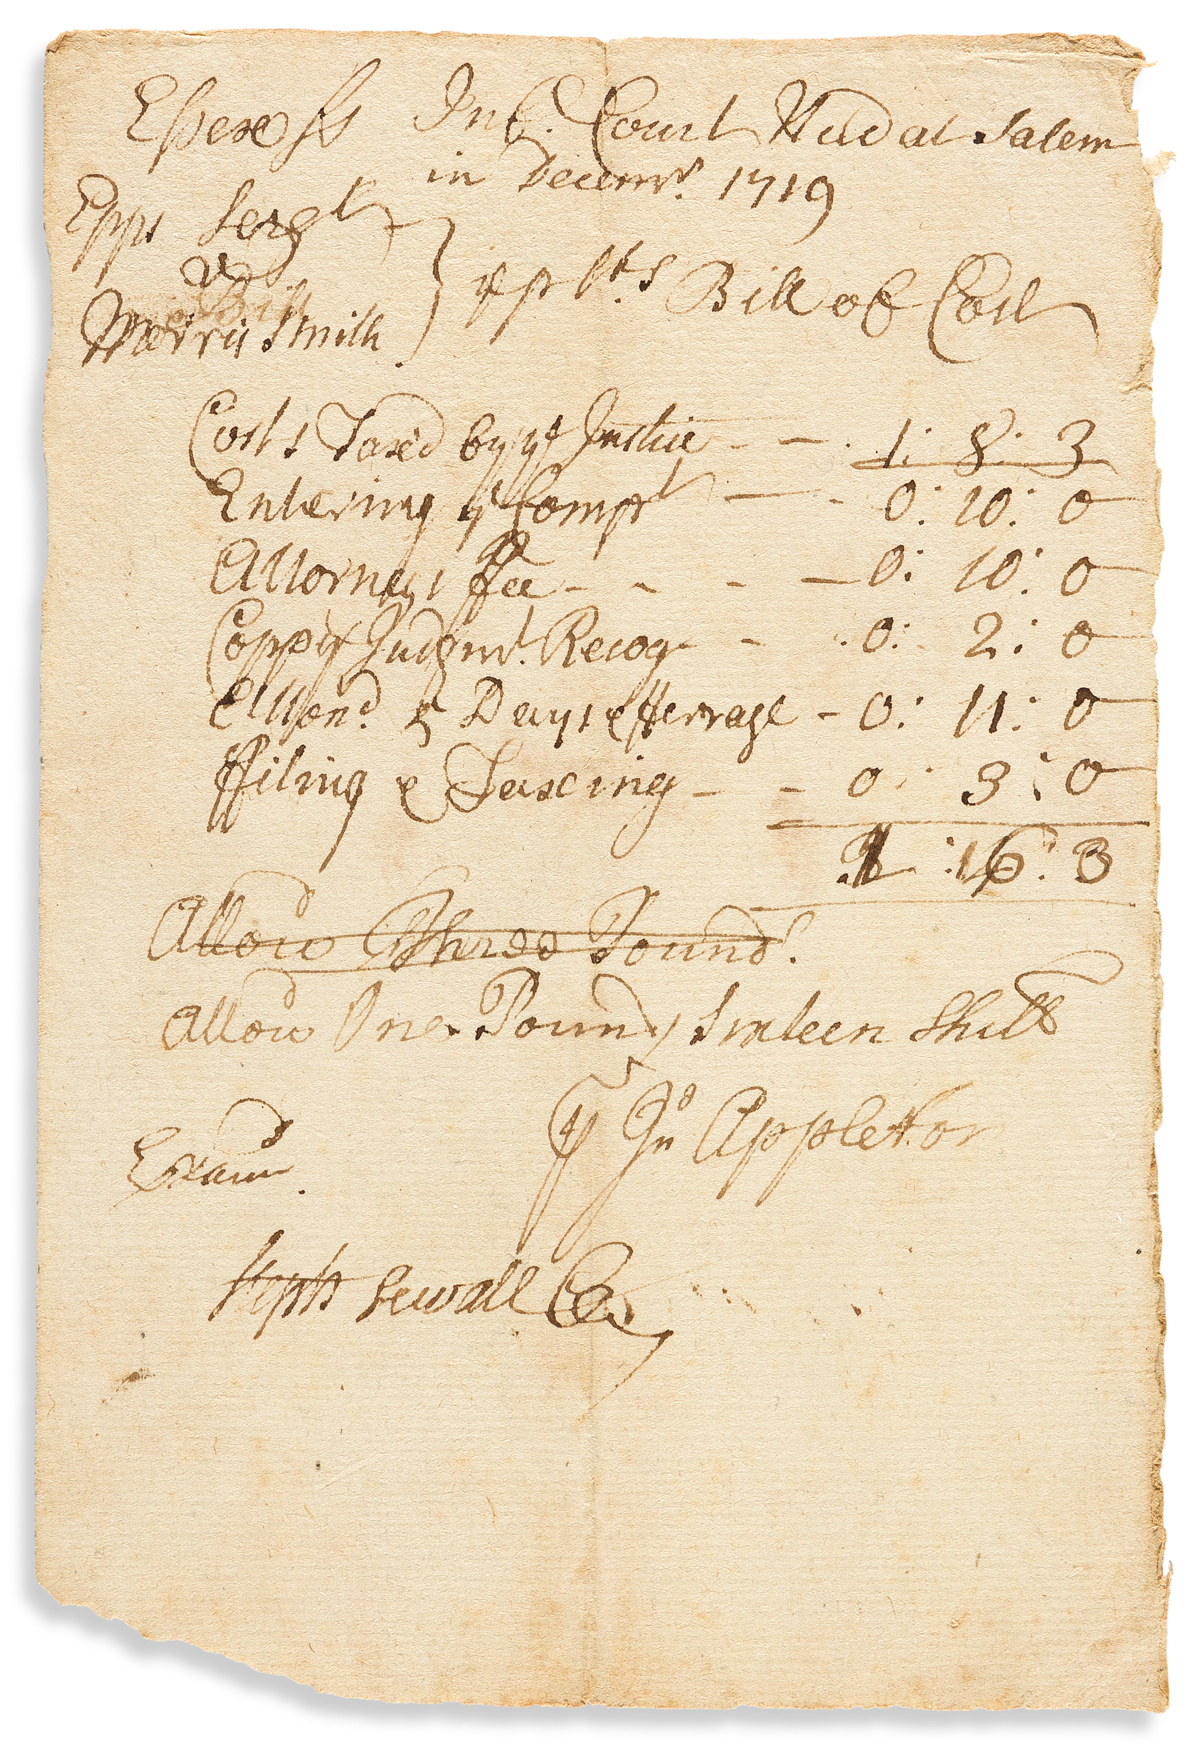 SEWALL, STEPHEN. Document Signed, Steph Sewall Cler[k], bill for court costs